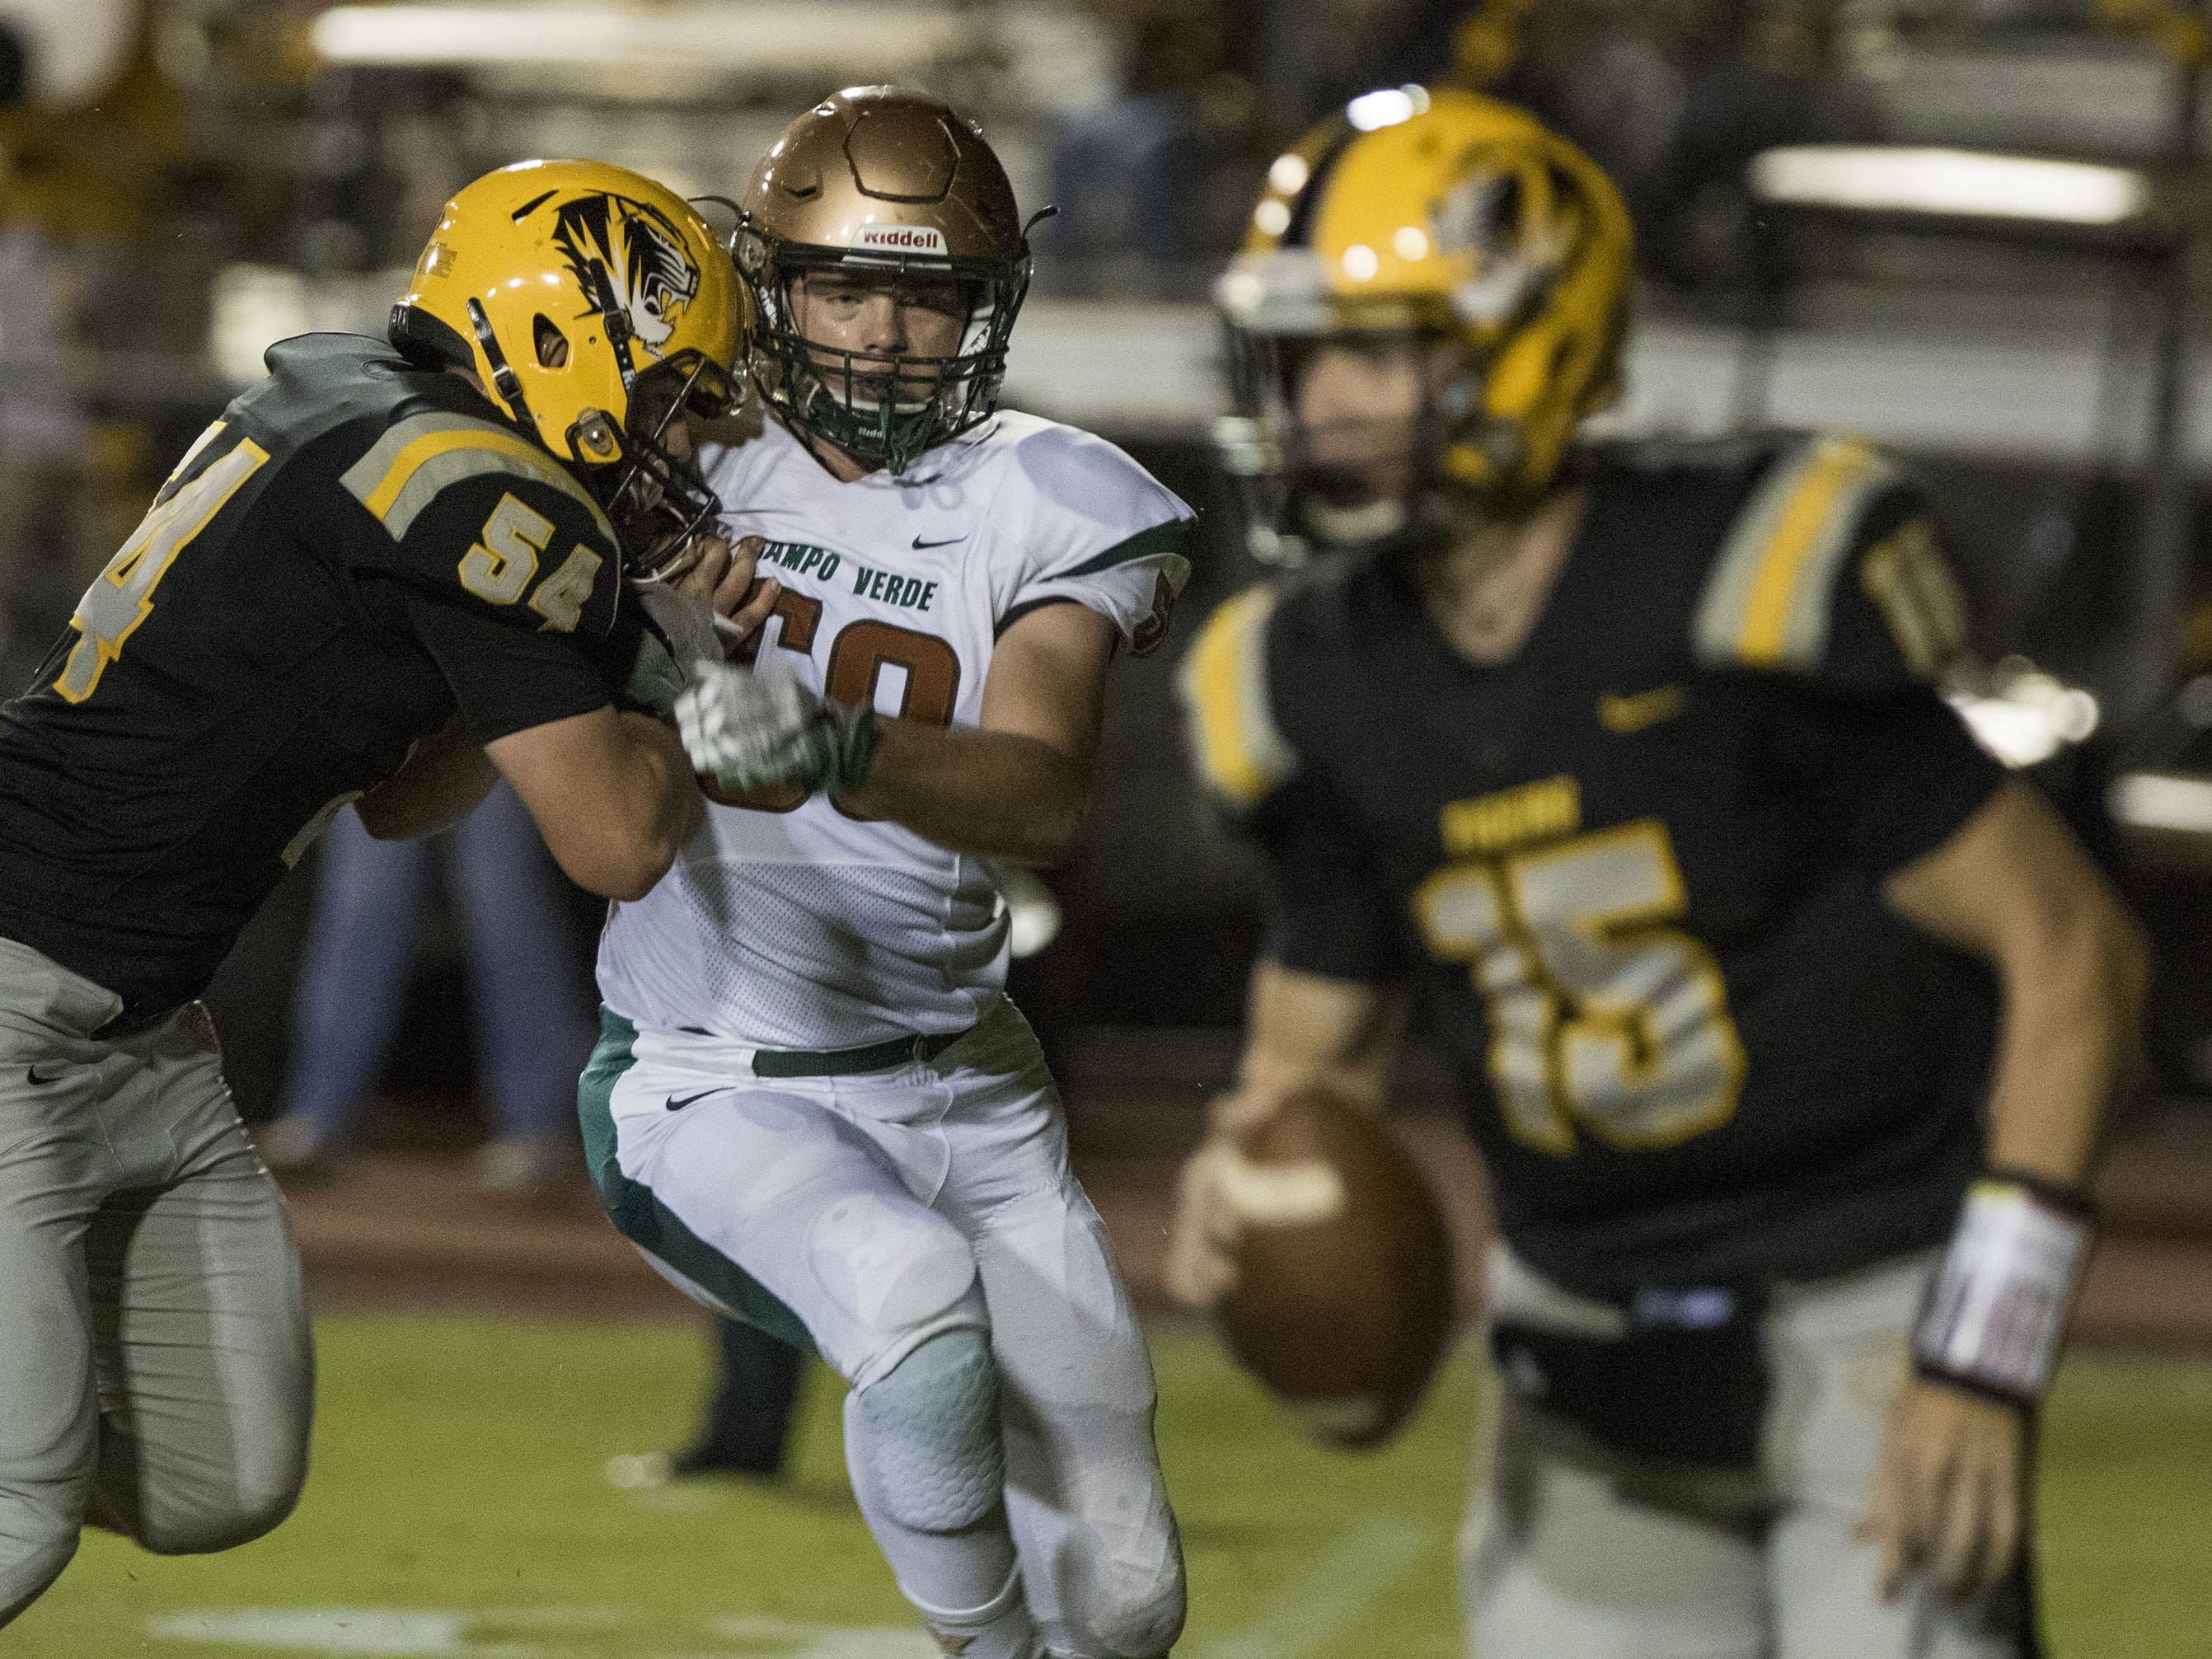 Campo Verde's Trevor Kauer eyes Gilbert quarterback Will Plummer during their game in Gilbert Friday, Sept. 21, 2018. #azhsfb